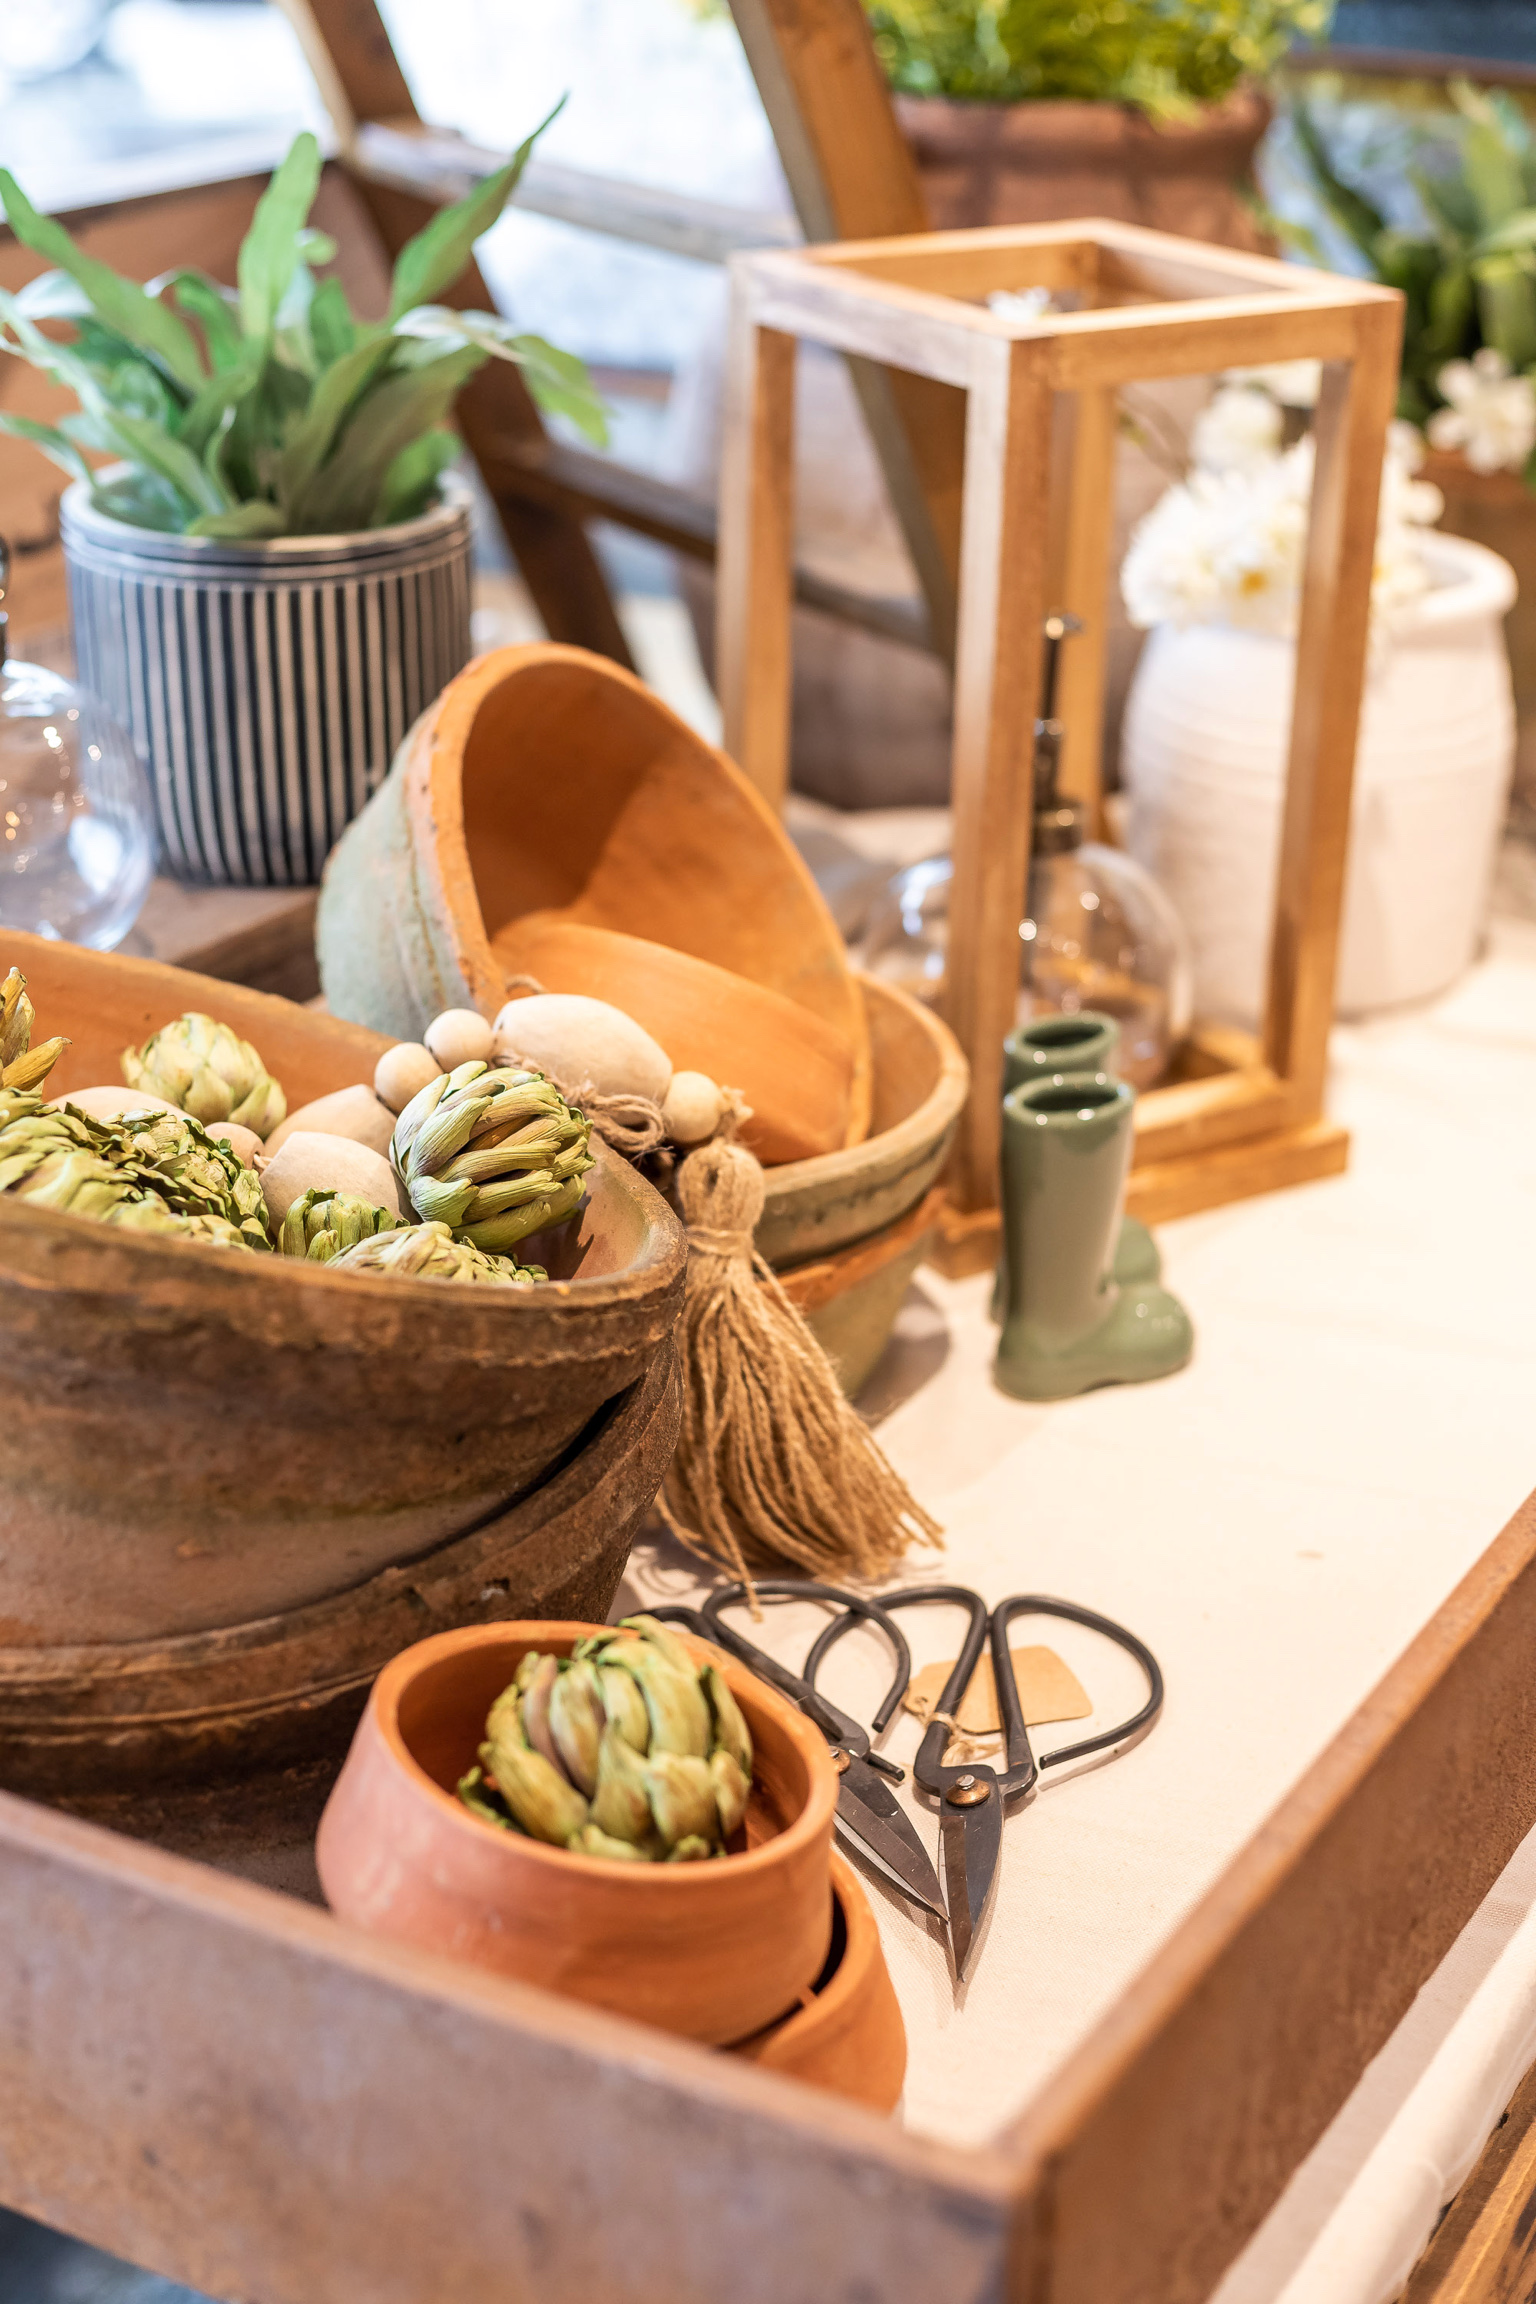 Natural home decor, gifts, and greenery